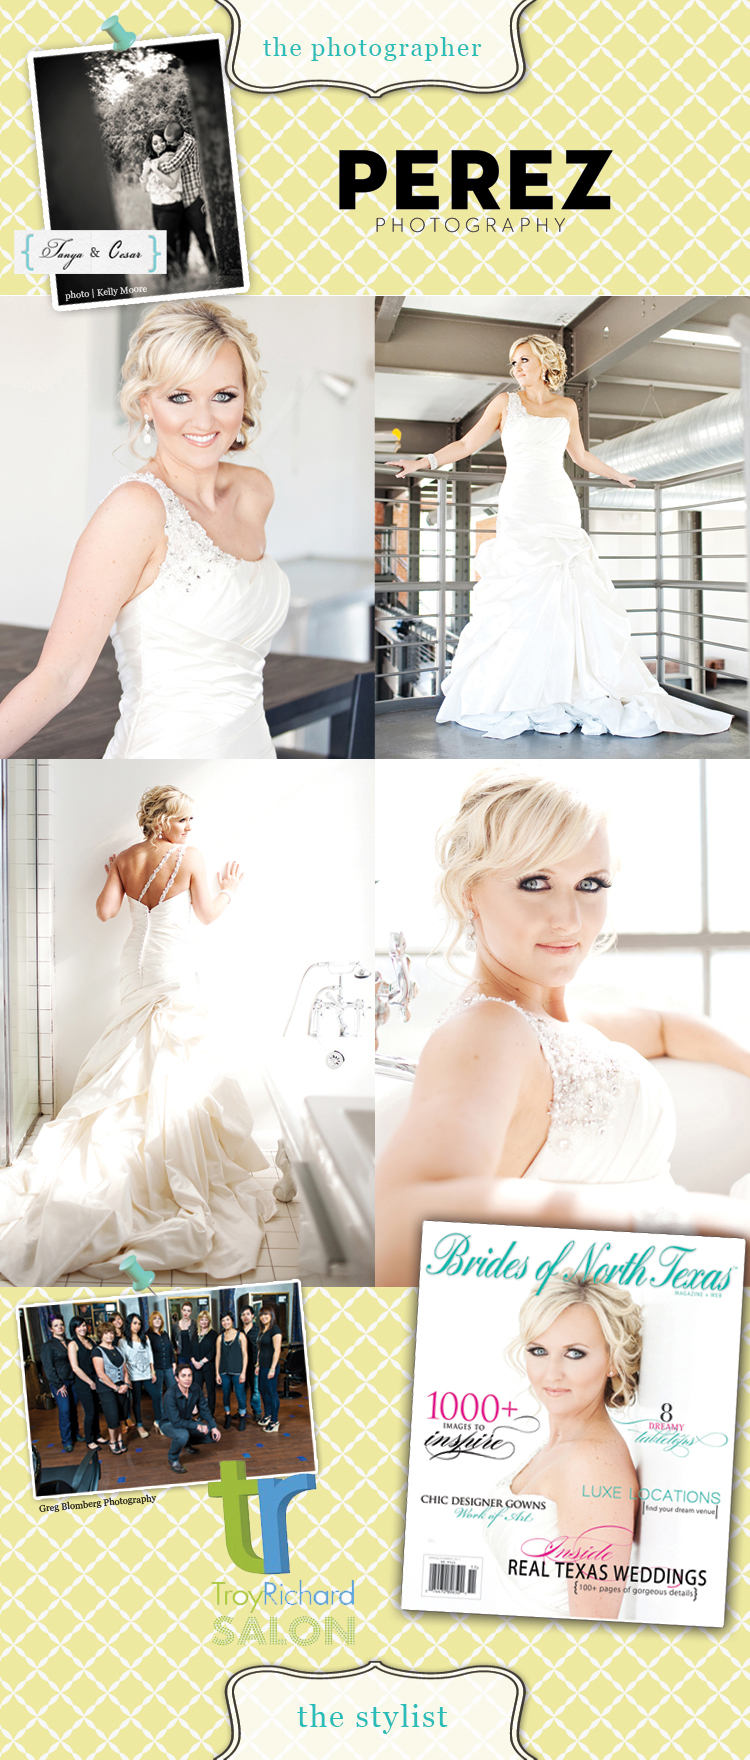 Brides of North Texas cover contest Perez Photography Troy Richard Salon